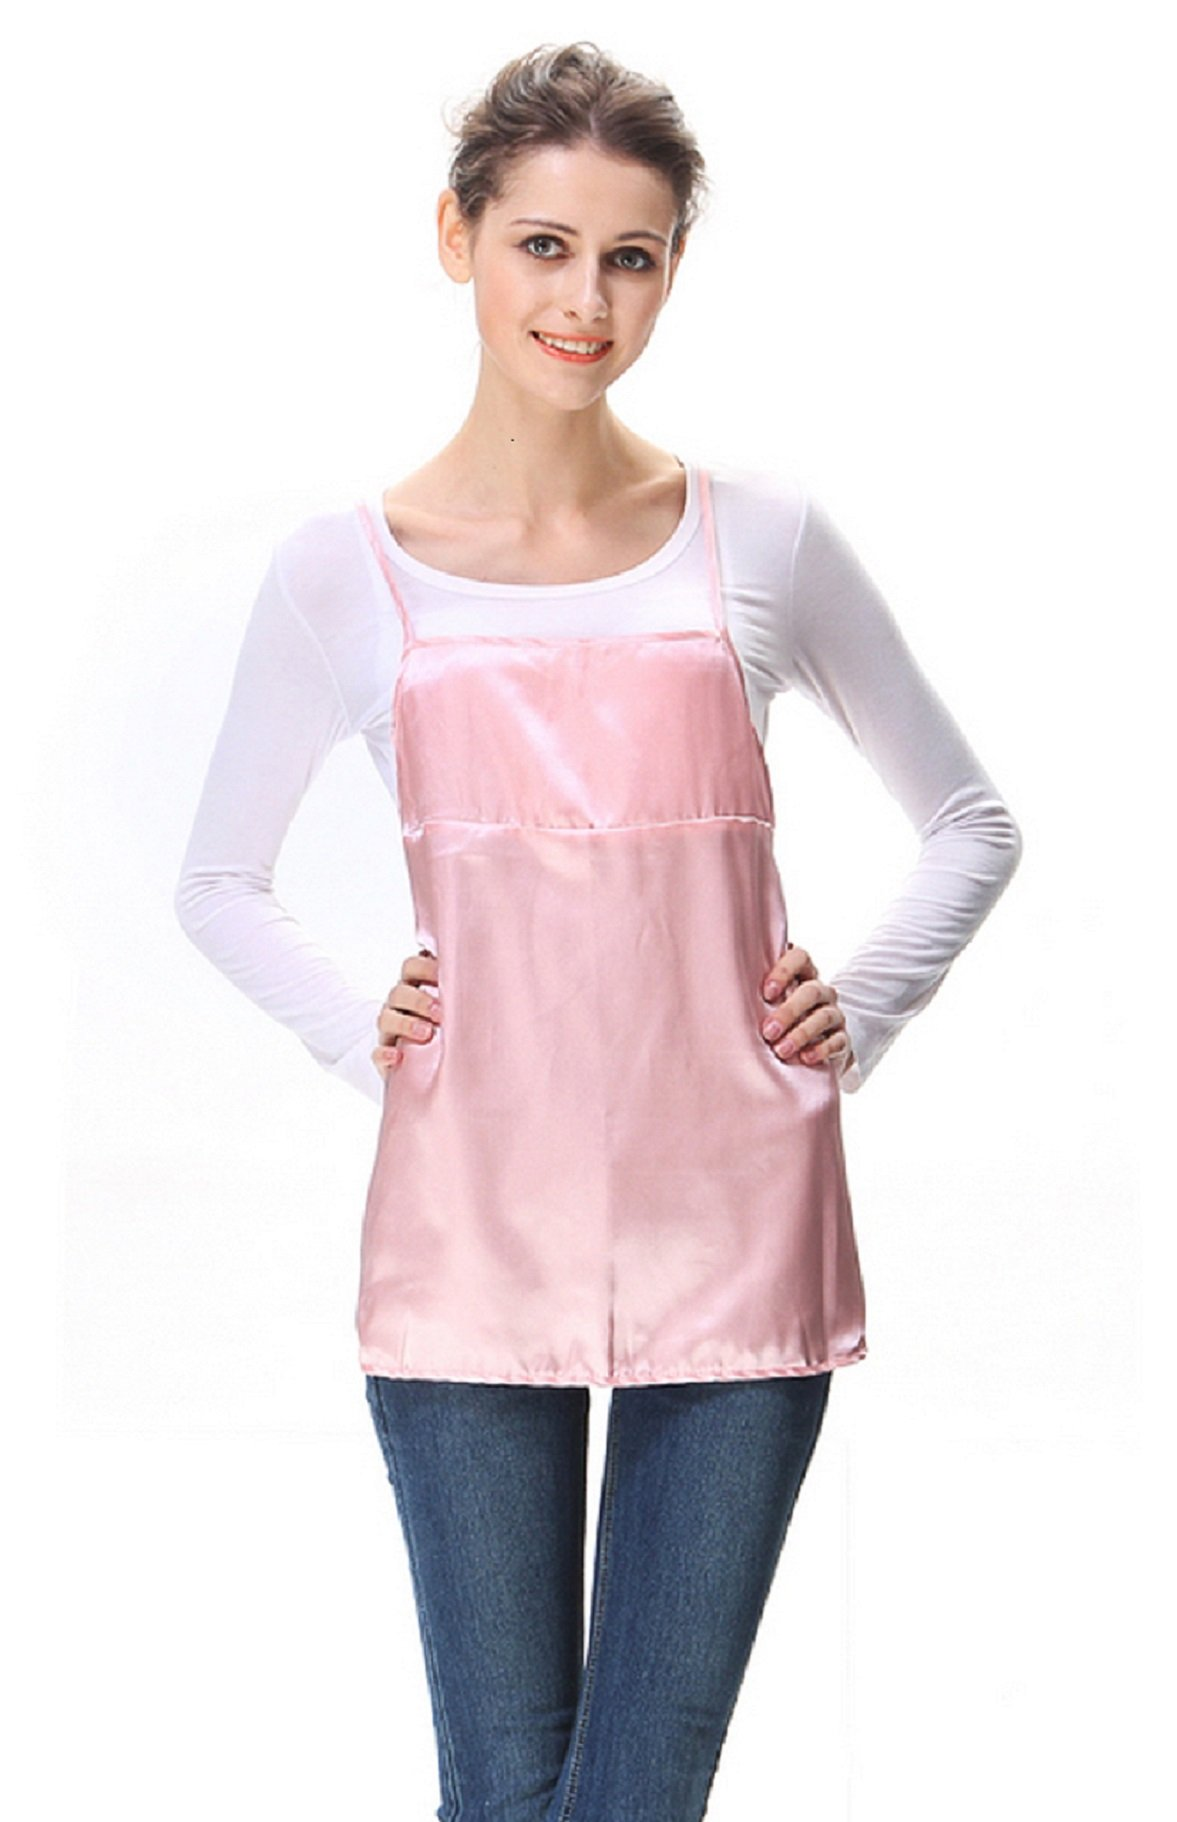 Anti-Radiation Maternity Clothes Belly Tee Protection Shield Pink 8900639 by OURSURE